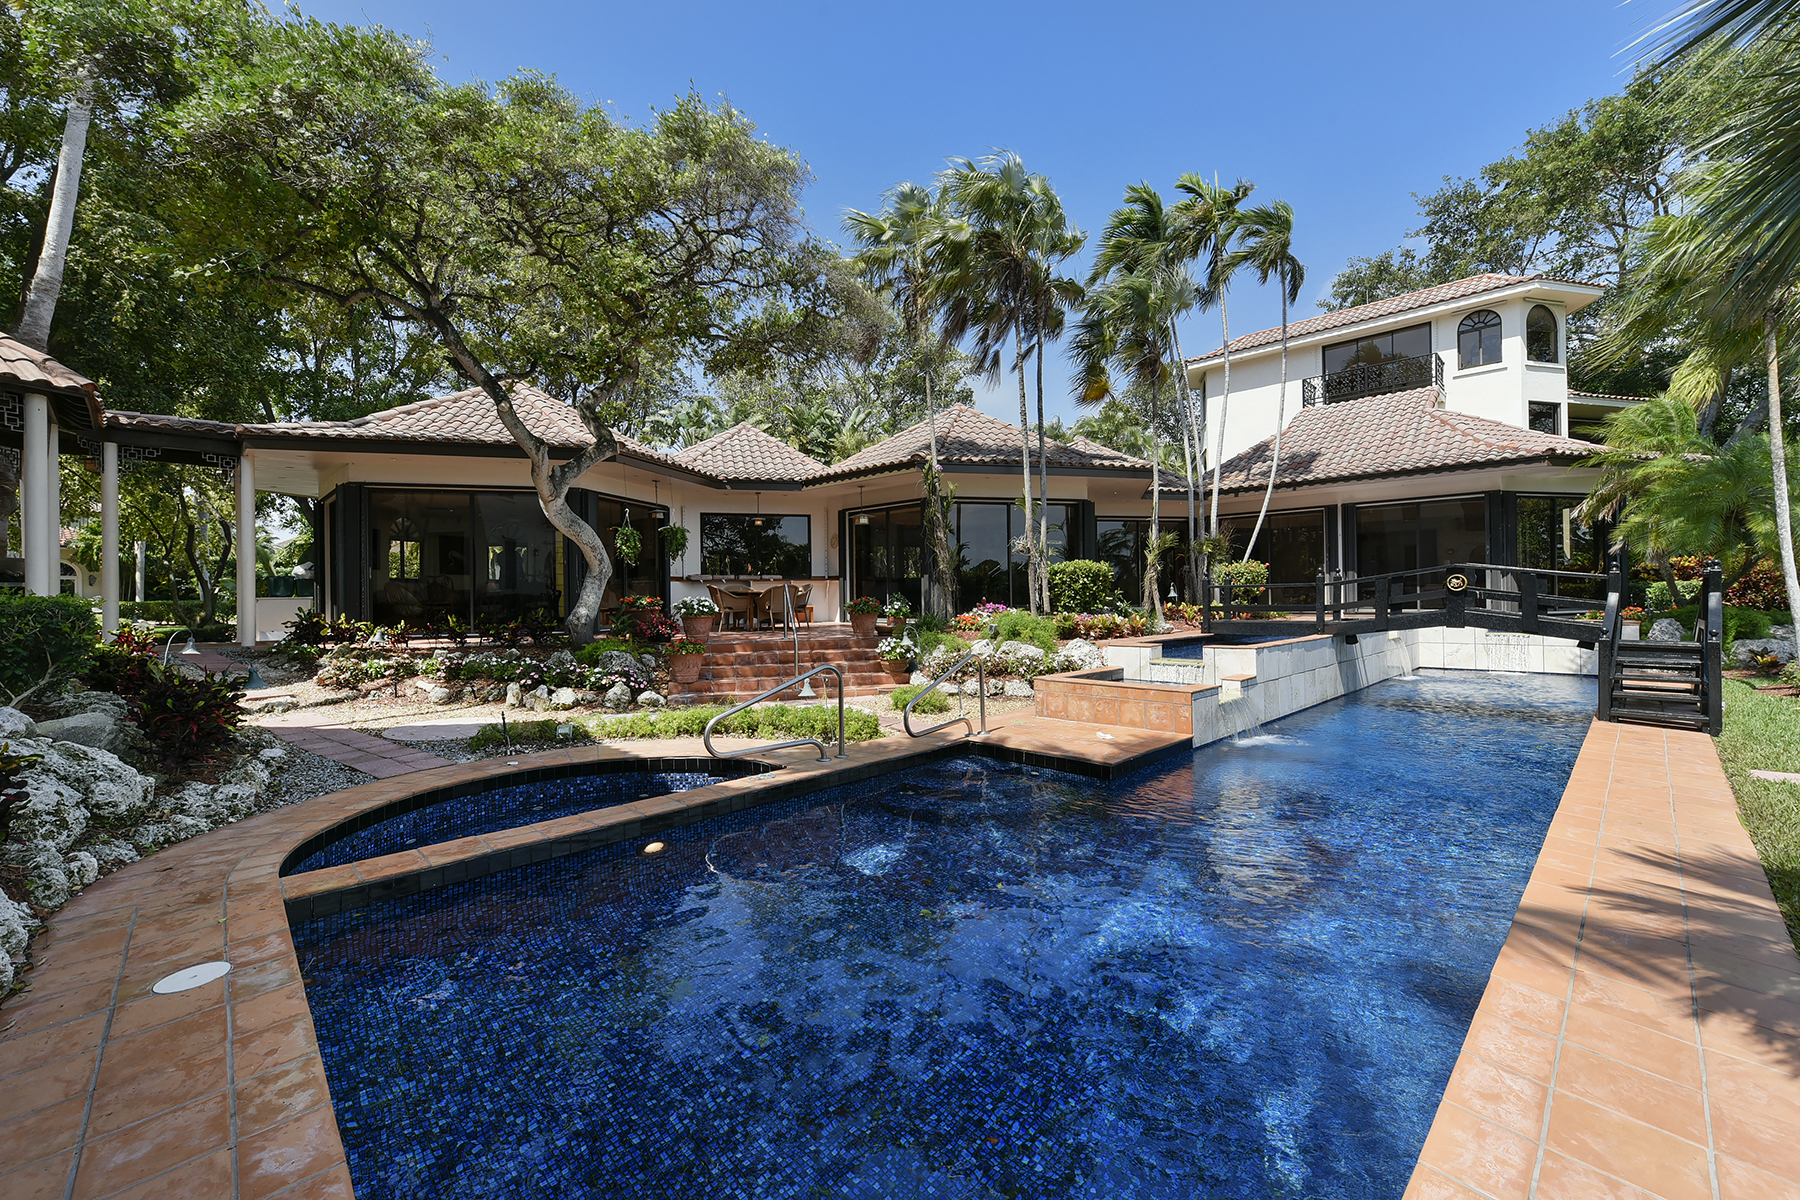 Single Family Home for Sale at Architecturally Stunning Waterfront Home at Ocean Reef 44 Cardinal Lane Key Largo, Florida, 33037 United States